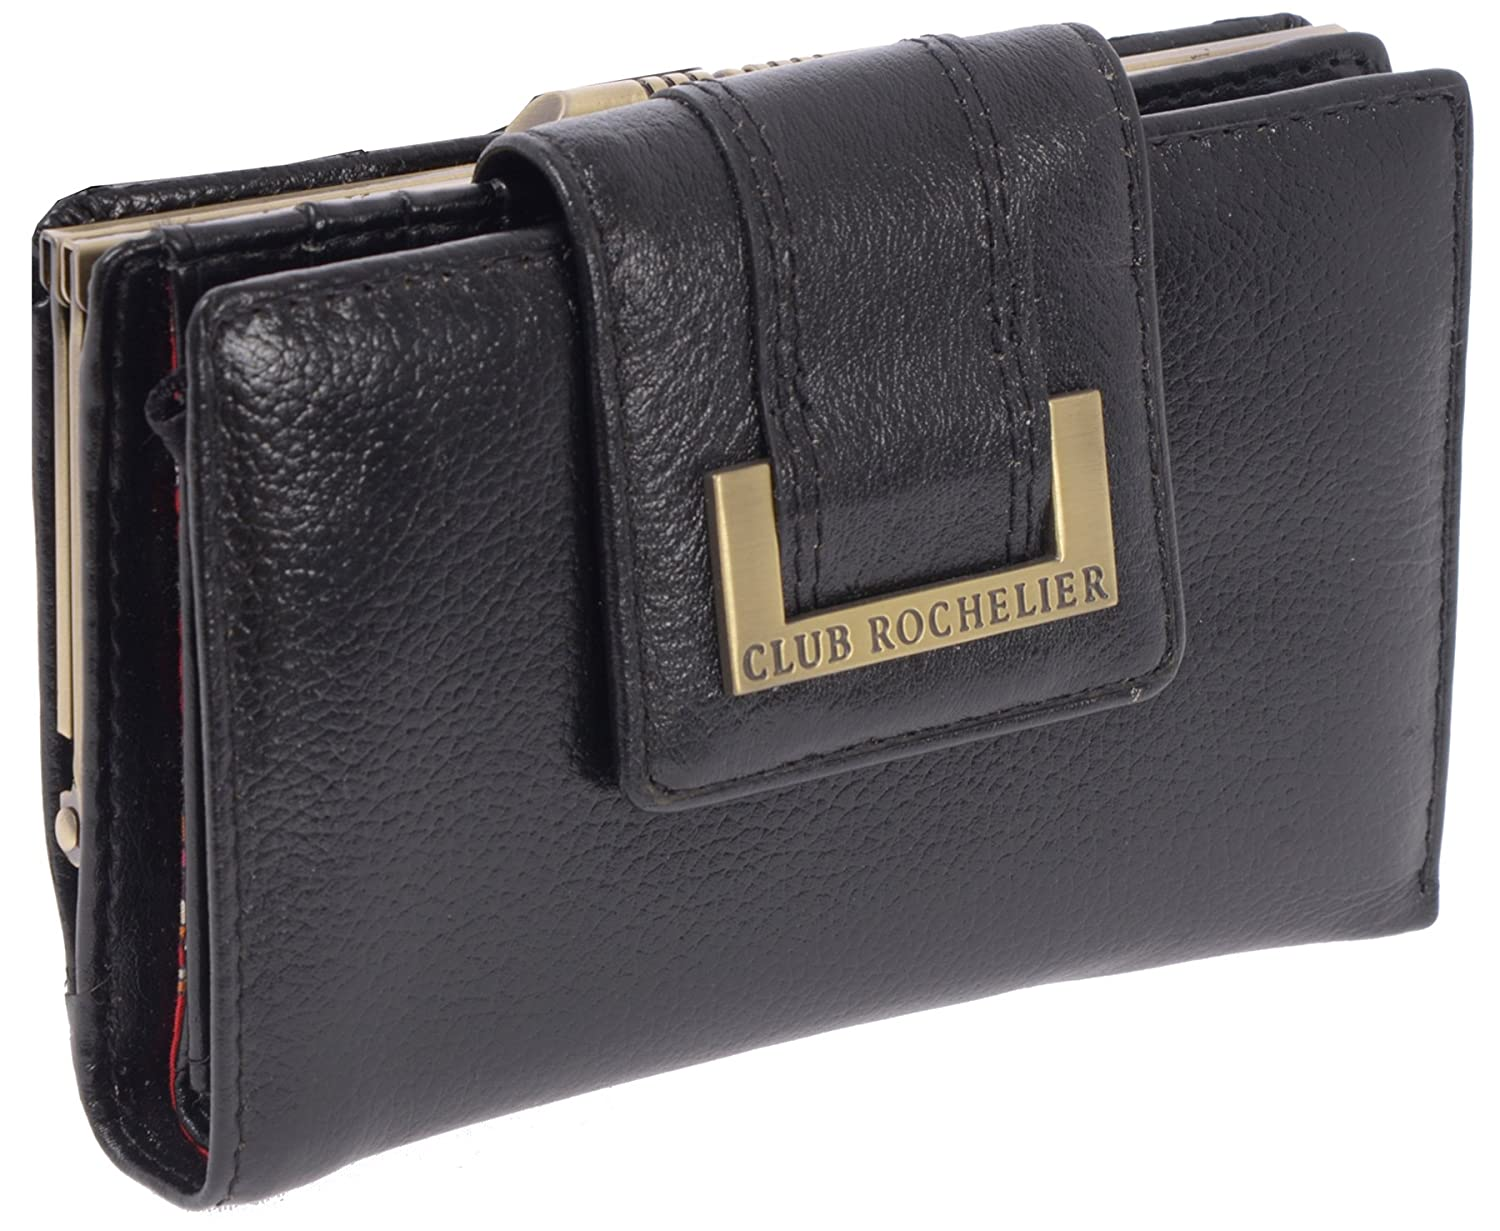 295974d75c03 Club Rochelier Women's Leather Wallet with Metal Frame Lock Change Holder  (Black)